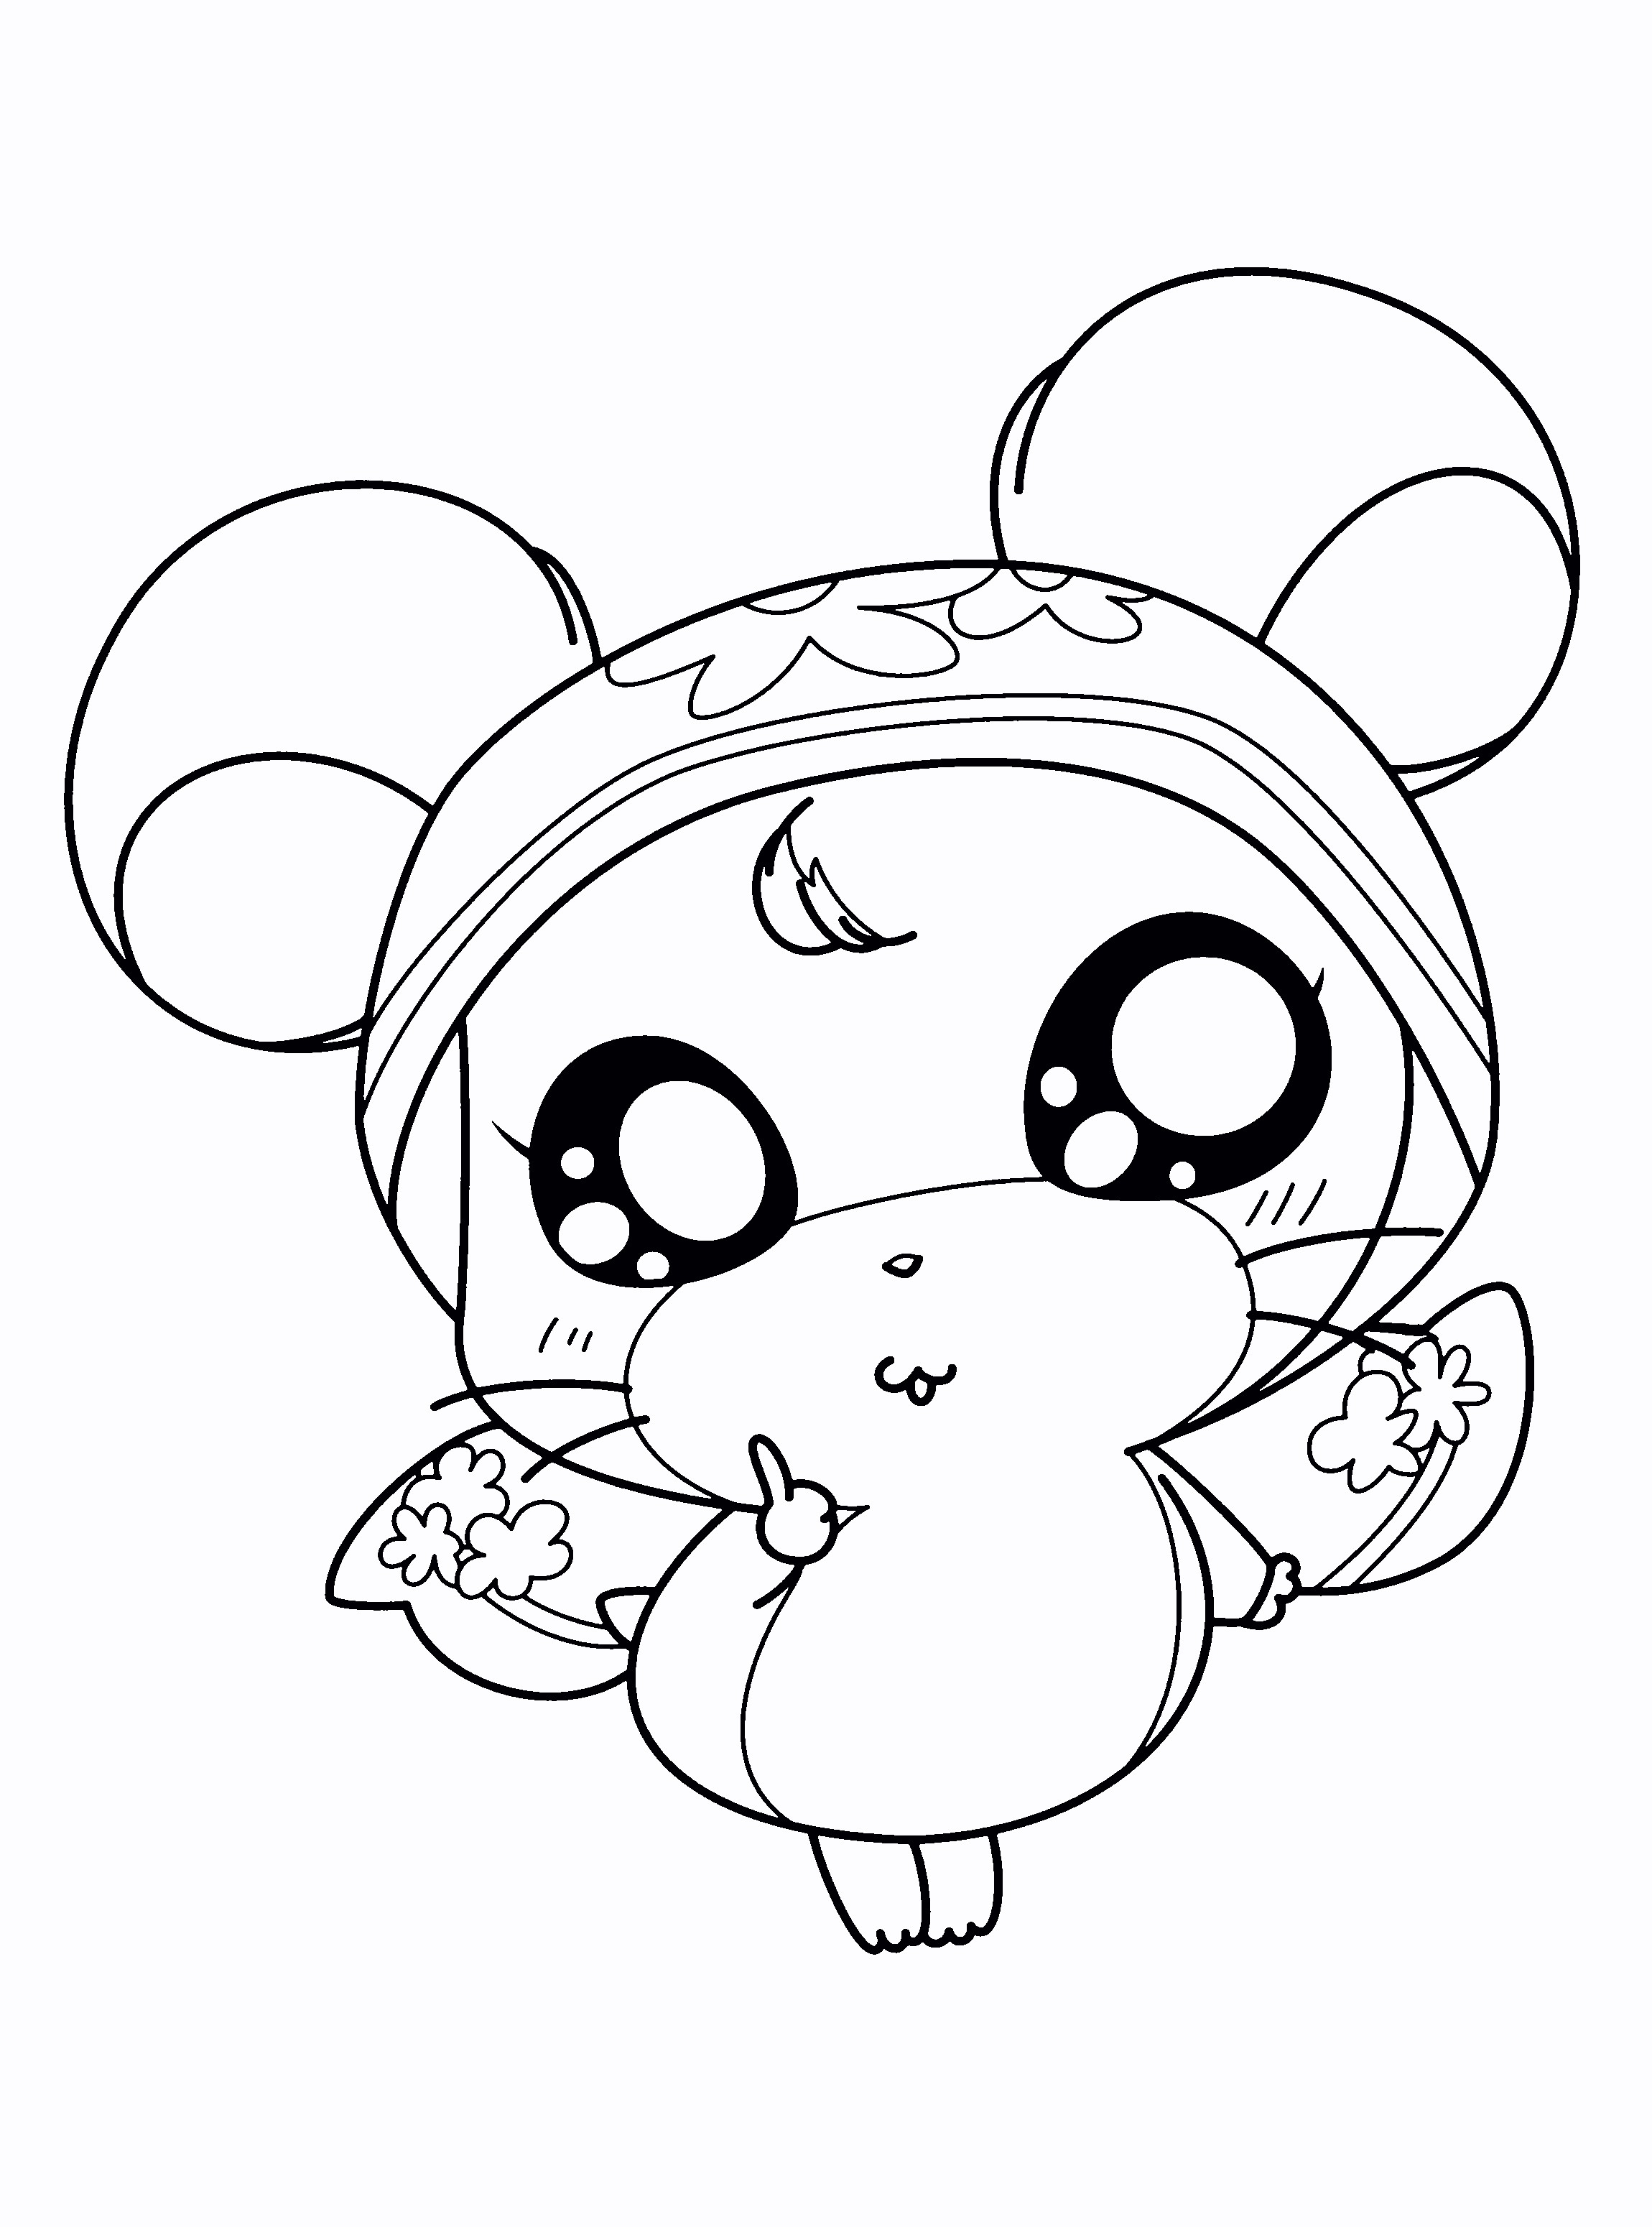 Link Coloring Pages  Download 9e - Save it to your computer